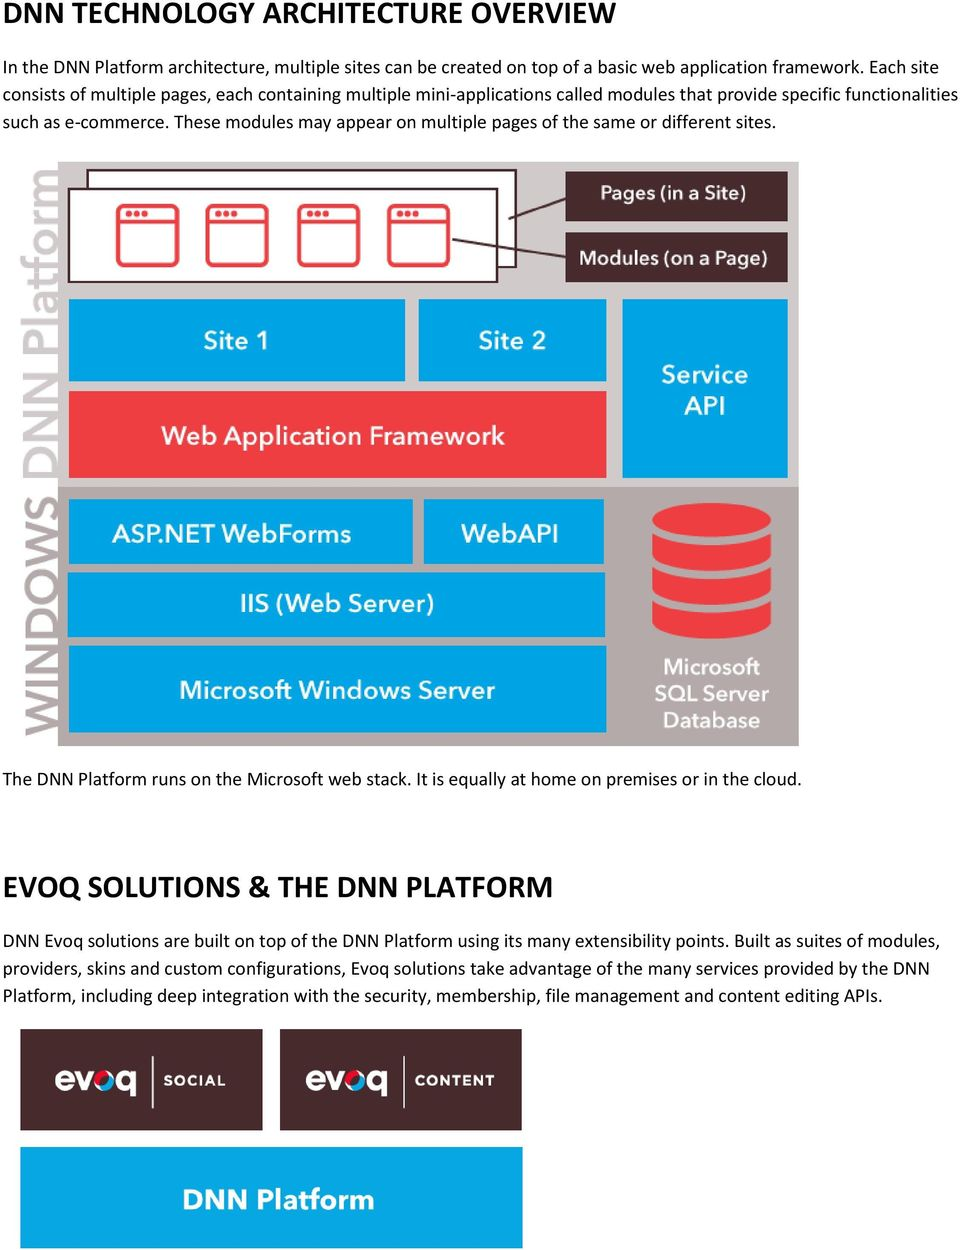 DNN TECHNOLOGY ARCHITECTURE OVERVIEW - PDF